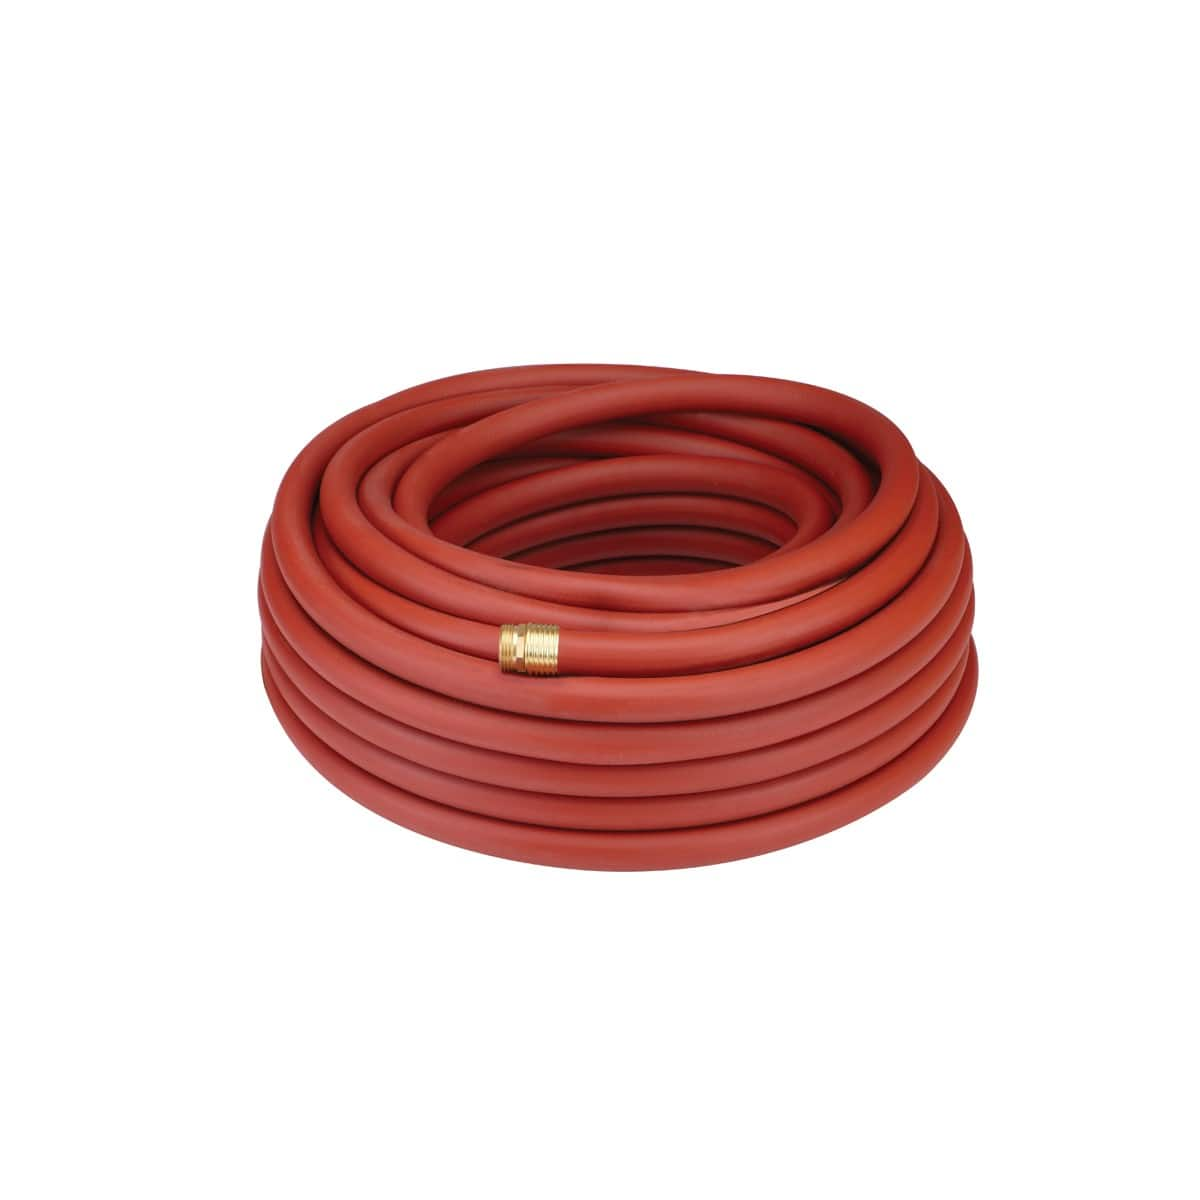 34 x 100 5 Ply Commercial Rubber Heavy Duty Garden Hose Brass